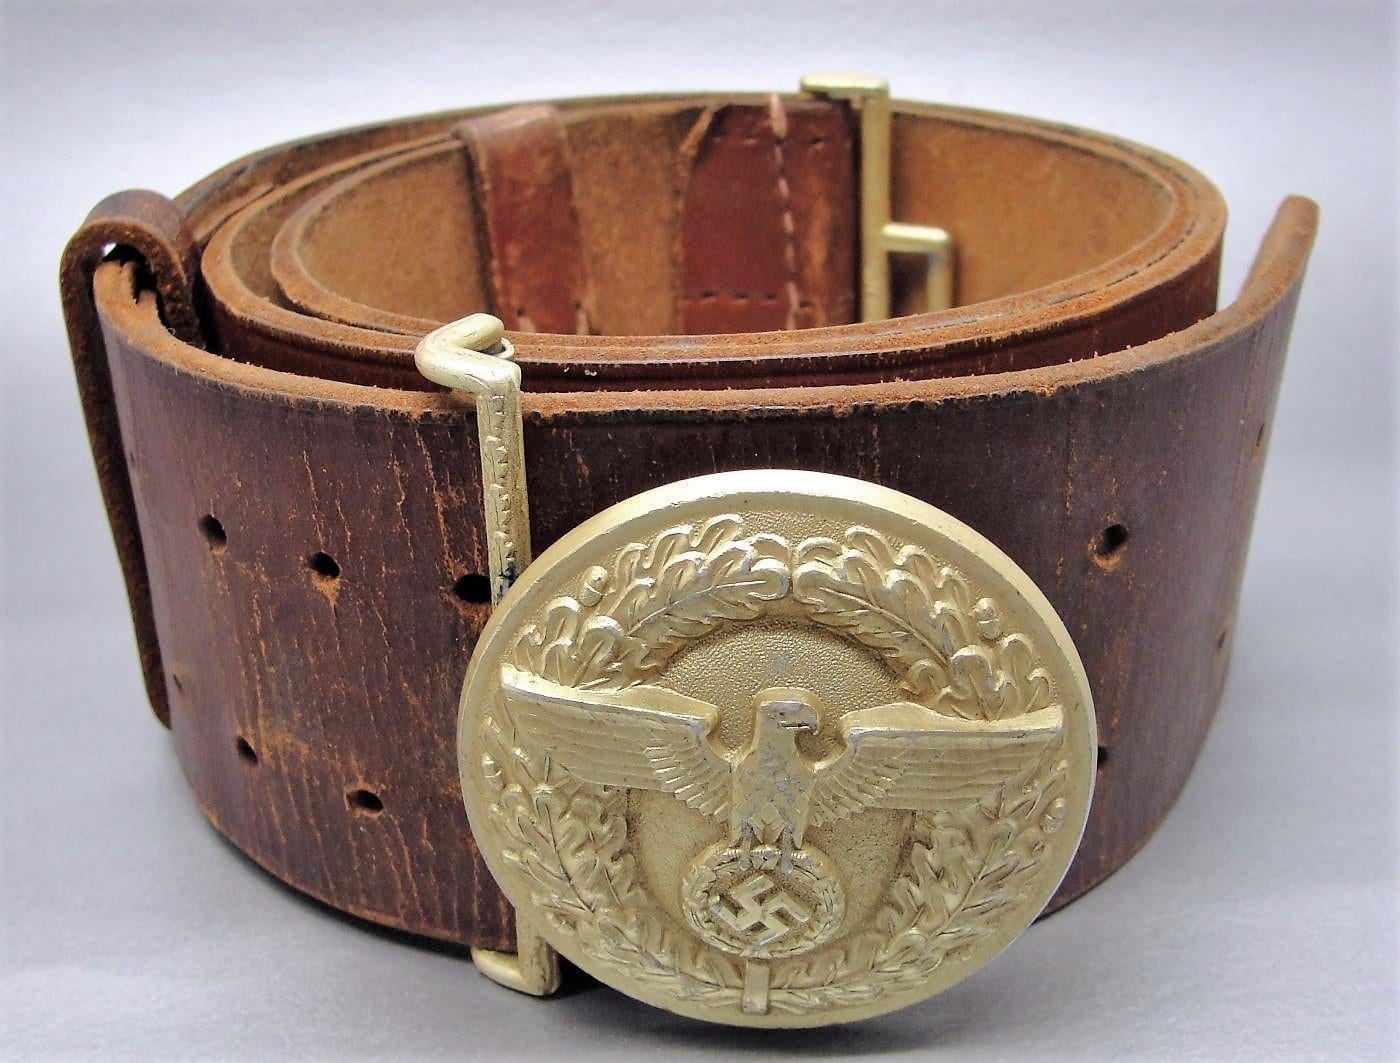 Political Leader's Belt and Buckle